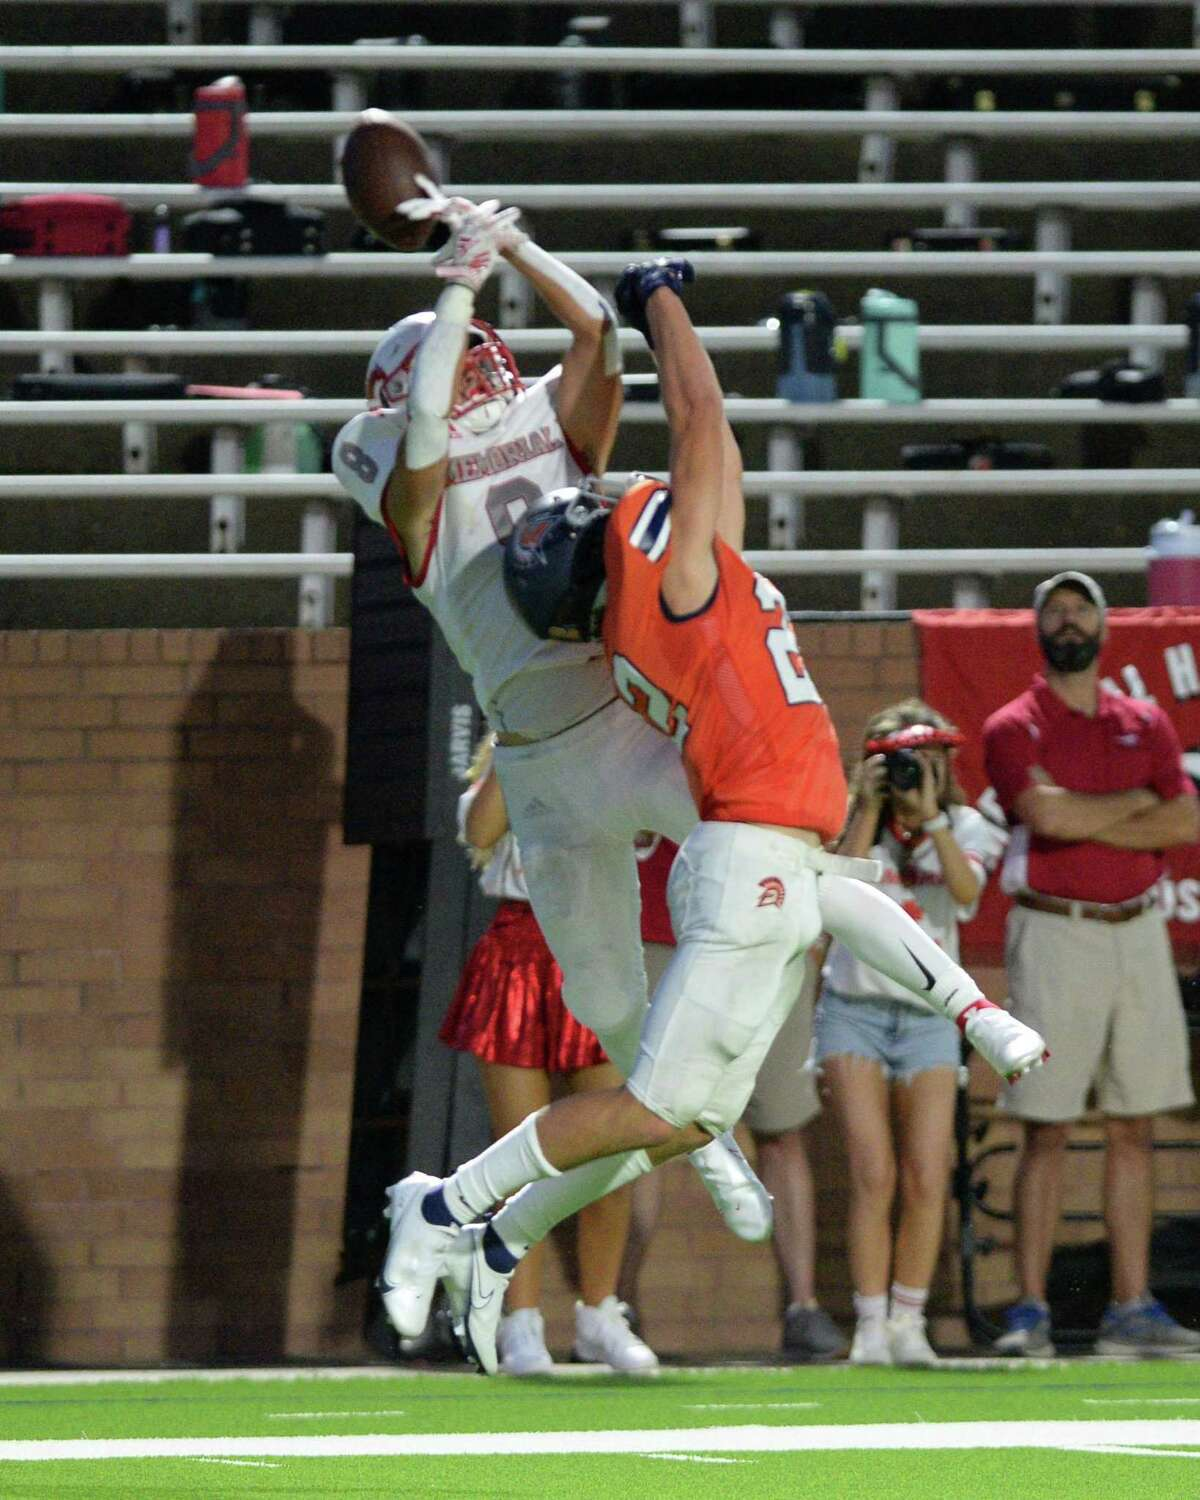 Bryce Turner (22) of Seven Lakes breaks a pass intended for Trent Posell (8) of Memorial during the second quarter of a non-District football game between the Seven Lakes Spartans and the Memorial Mustangs on Friday, August 27, 2021 at Rhodes Stadium, Katy, TX.